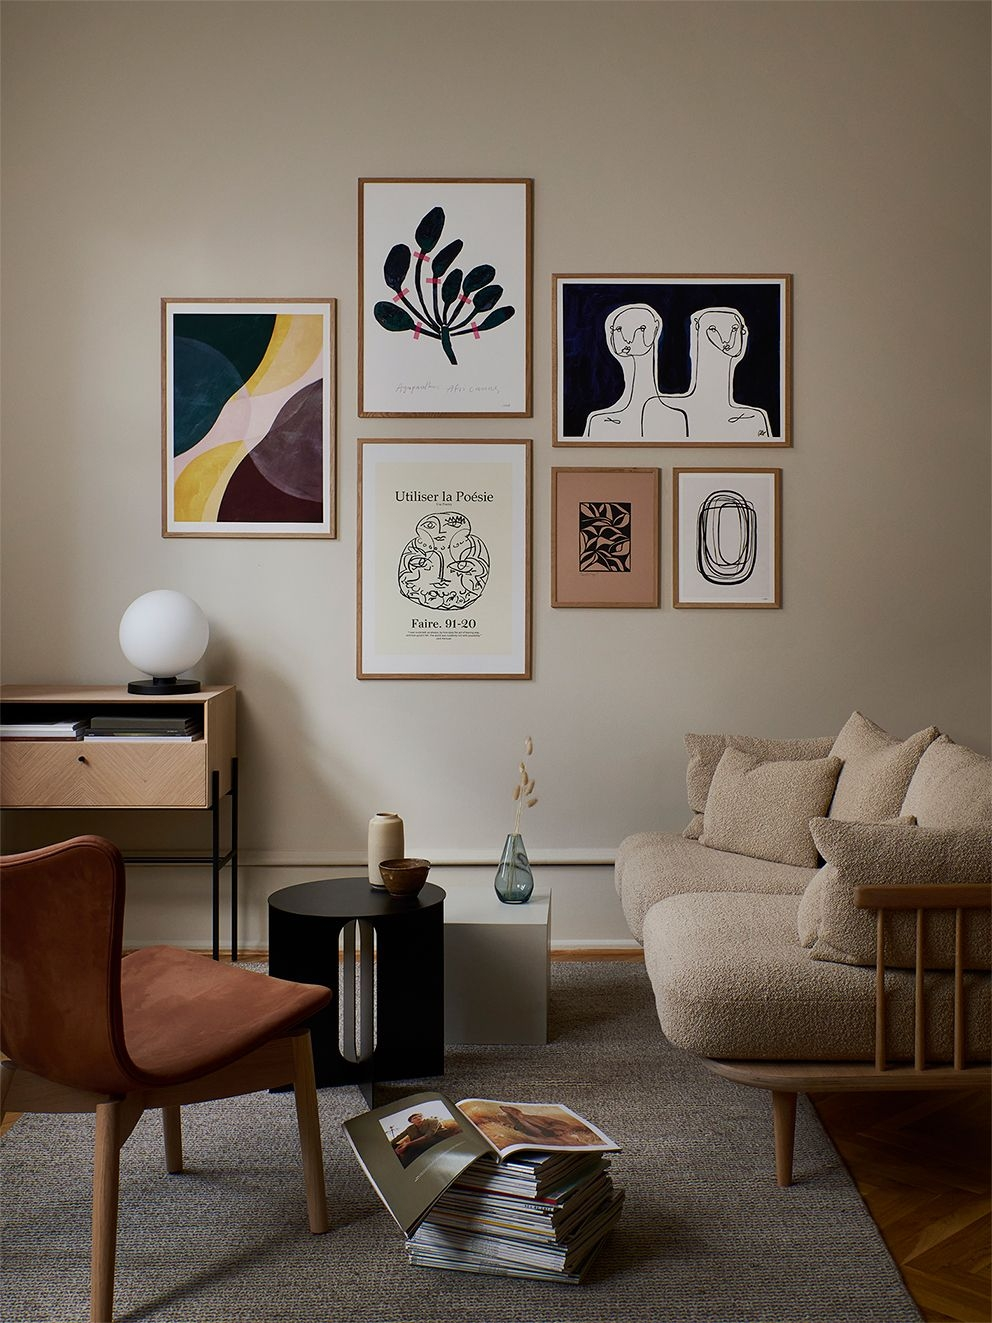 Stunning Wall Pictures for Home Decor On Fanciable Edit No 018 the Poster Club In 2021 On Wall Pictures for Home Decor